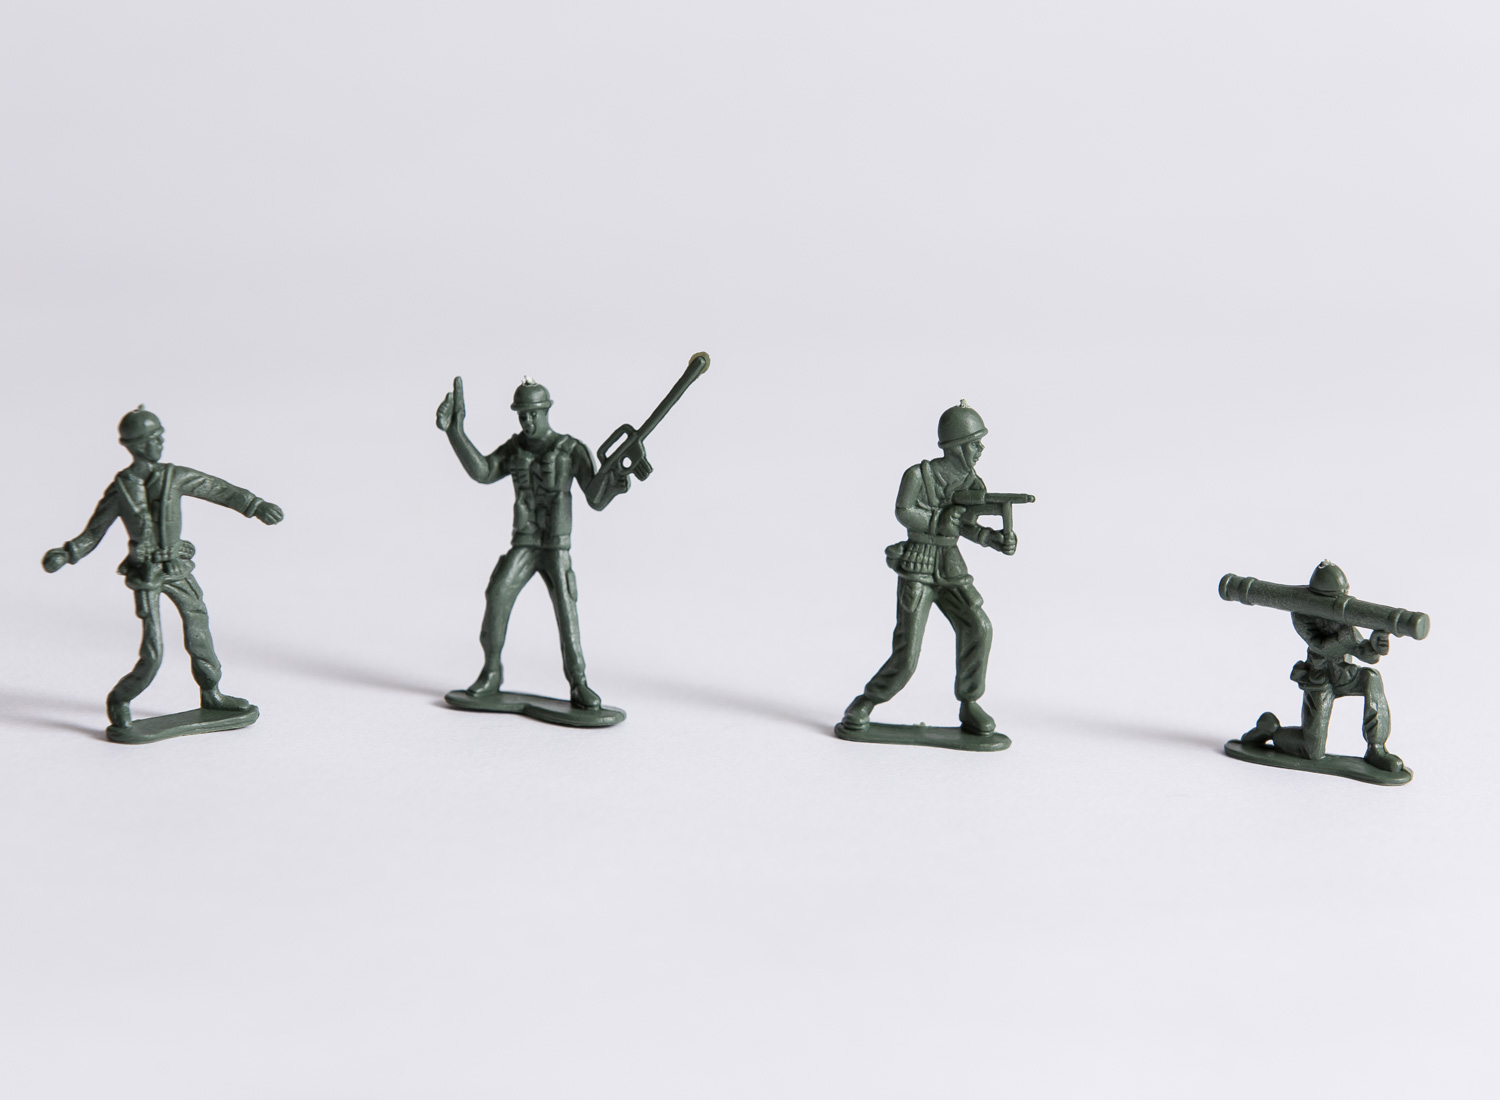 Green Army Men – as themselves